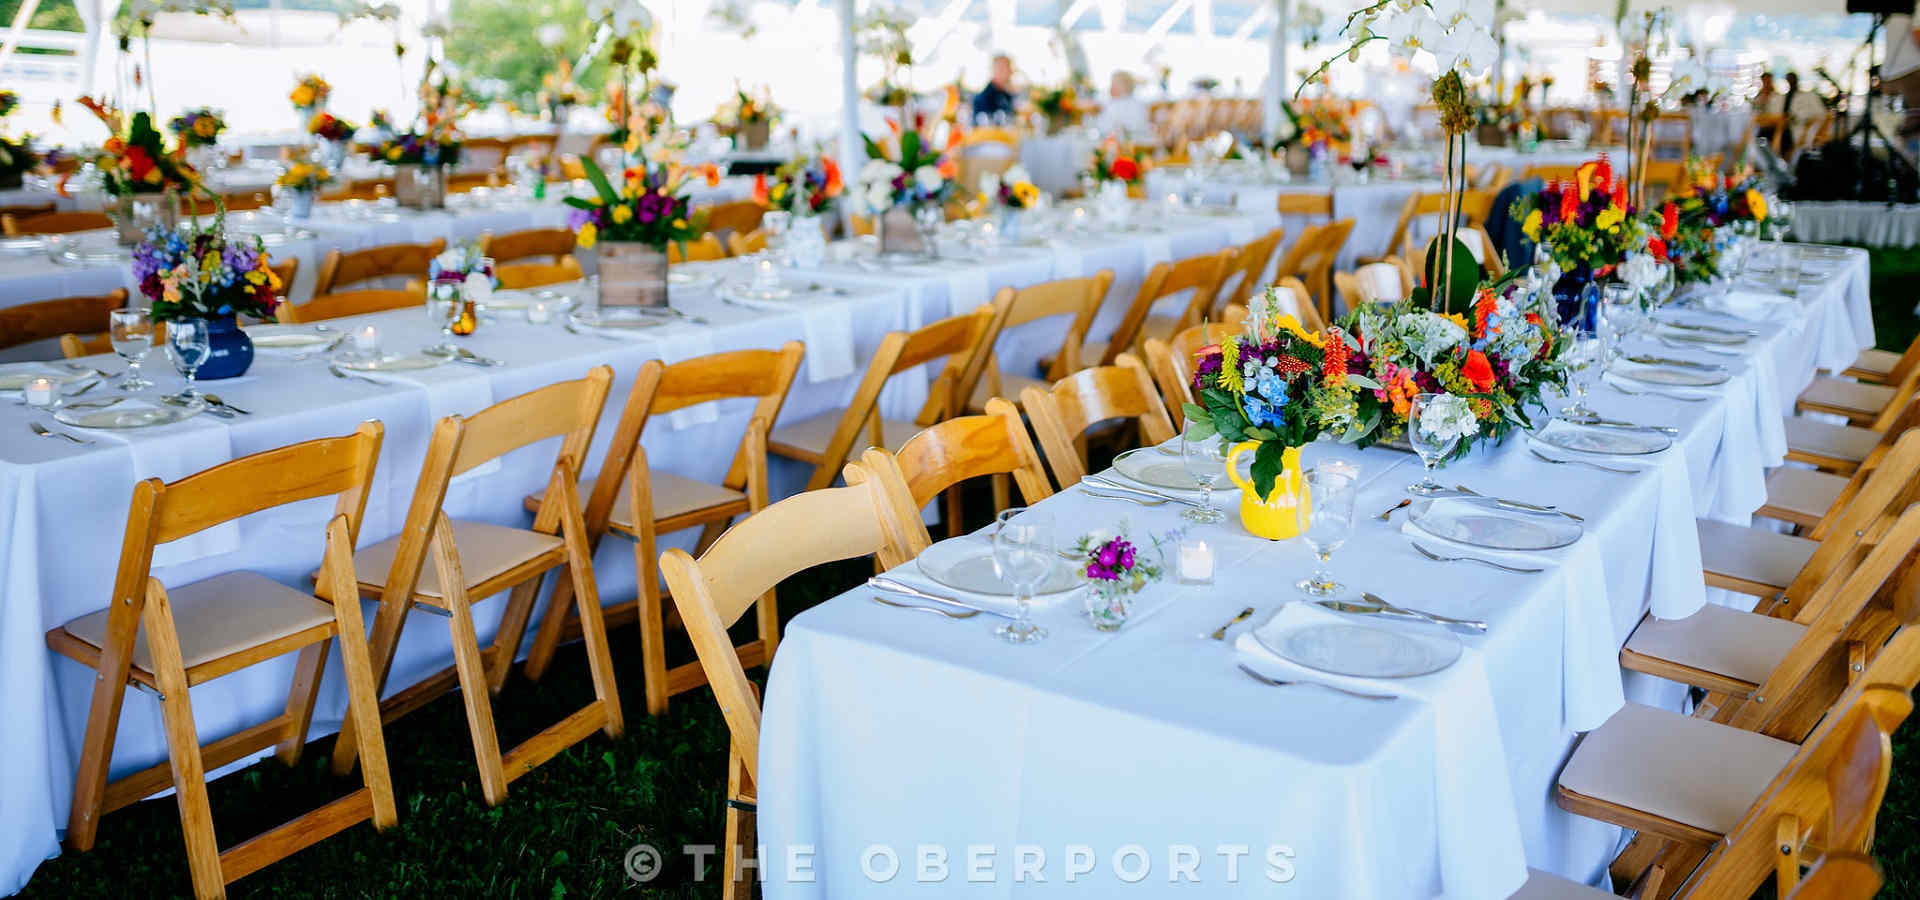 Wedding Rentals in the Tri-State Area